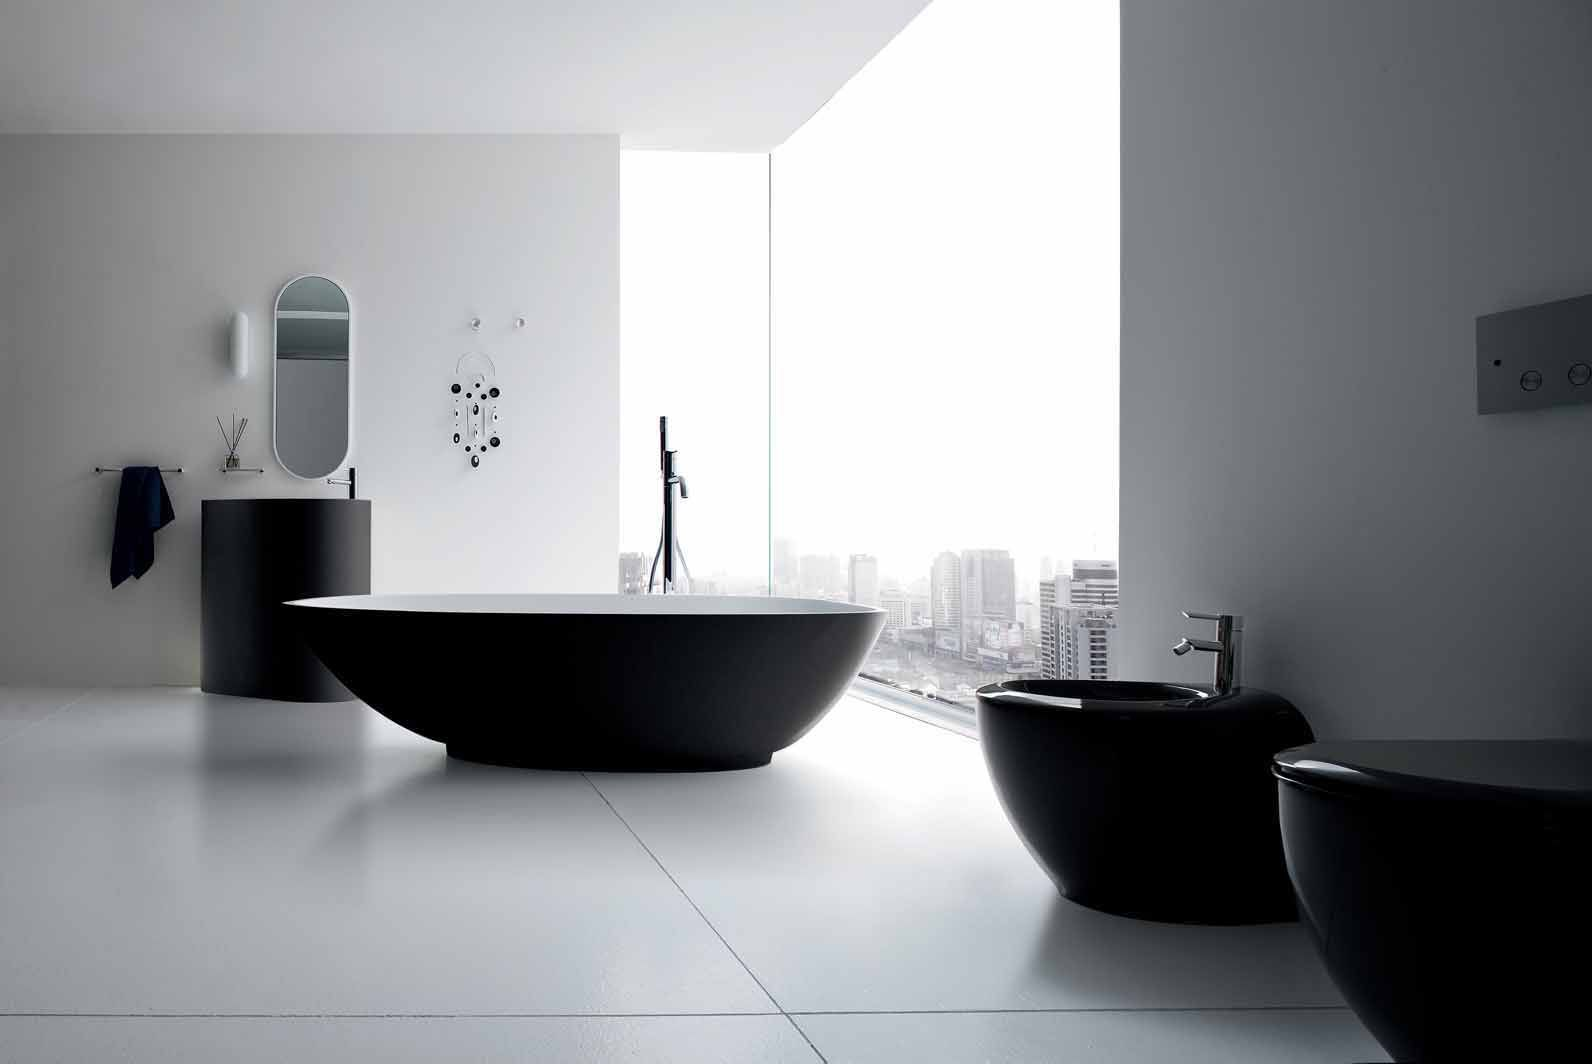 all black bathroom interior decorating ideas modern decoration  - excellent refine black and white sanitary ware for modern bathroom – velaby rexa design  refine black and white sanitary ware with bathtub